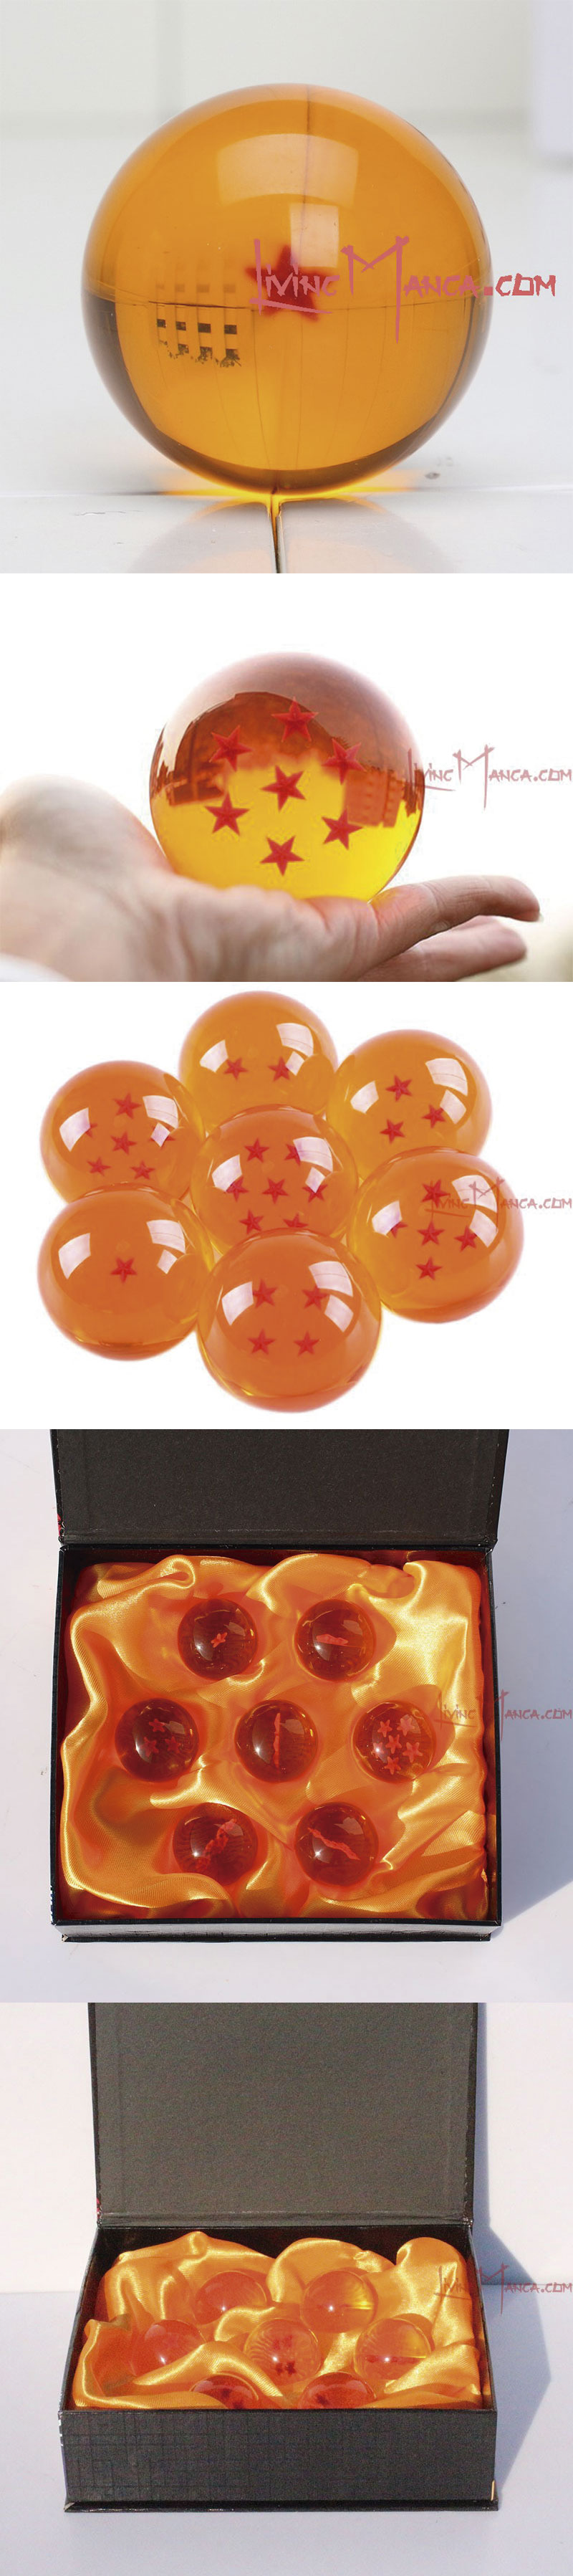 Bola de dragón de 1 estrella 3D de Dragon Ball